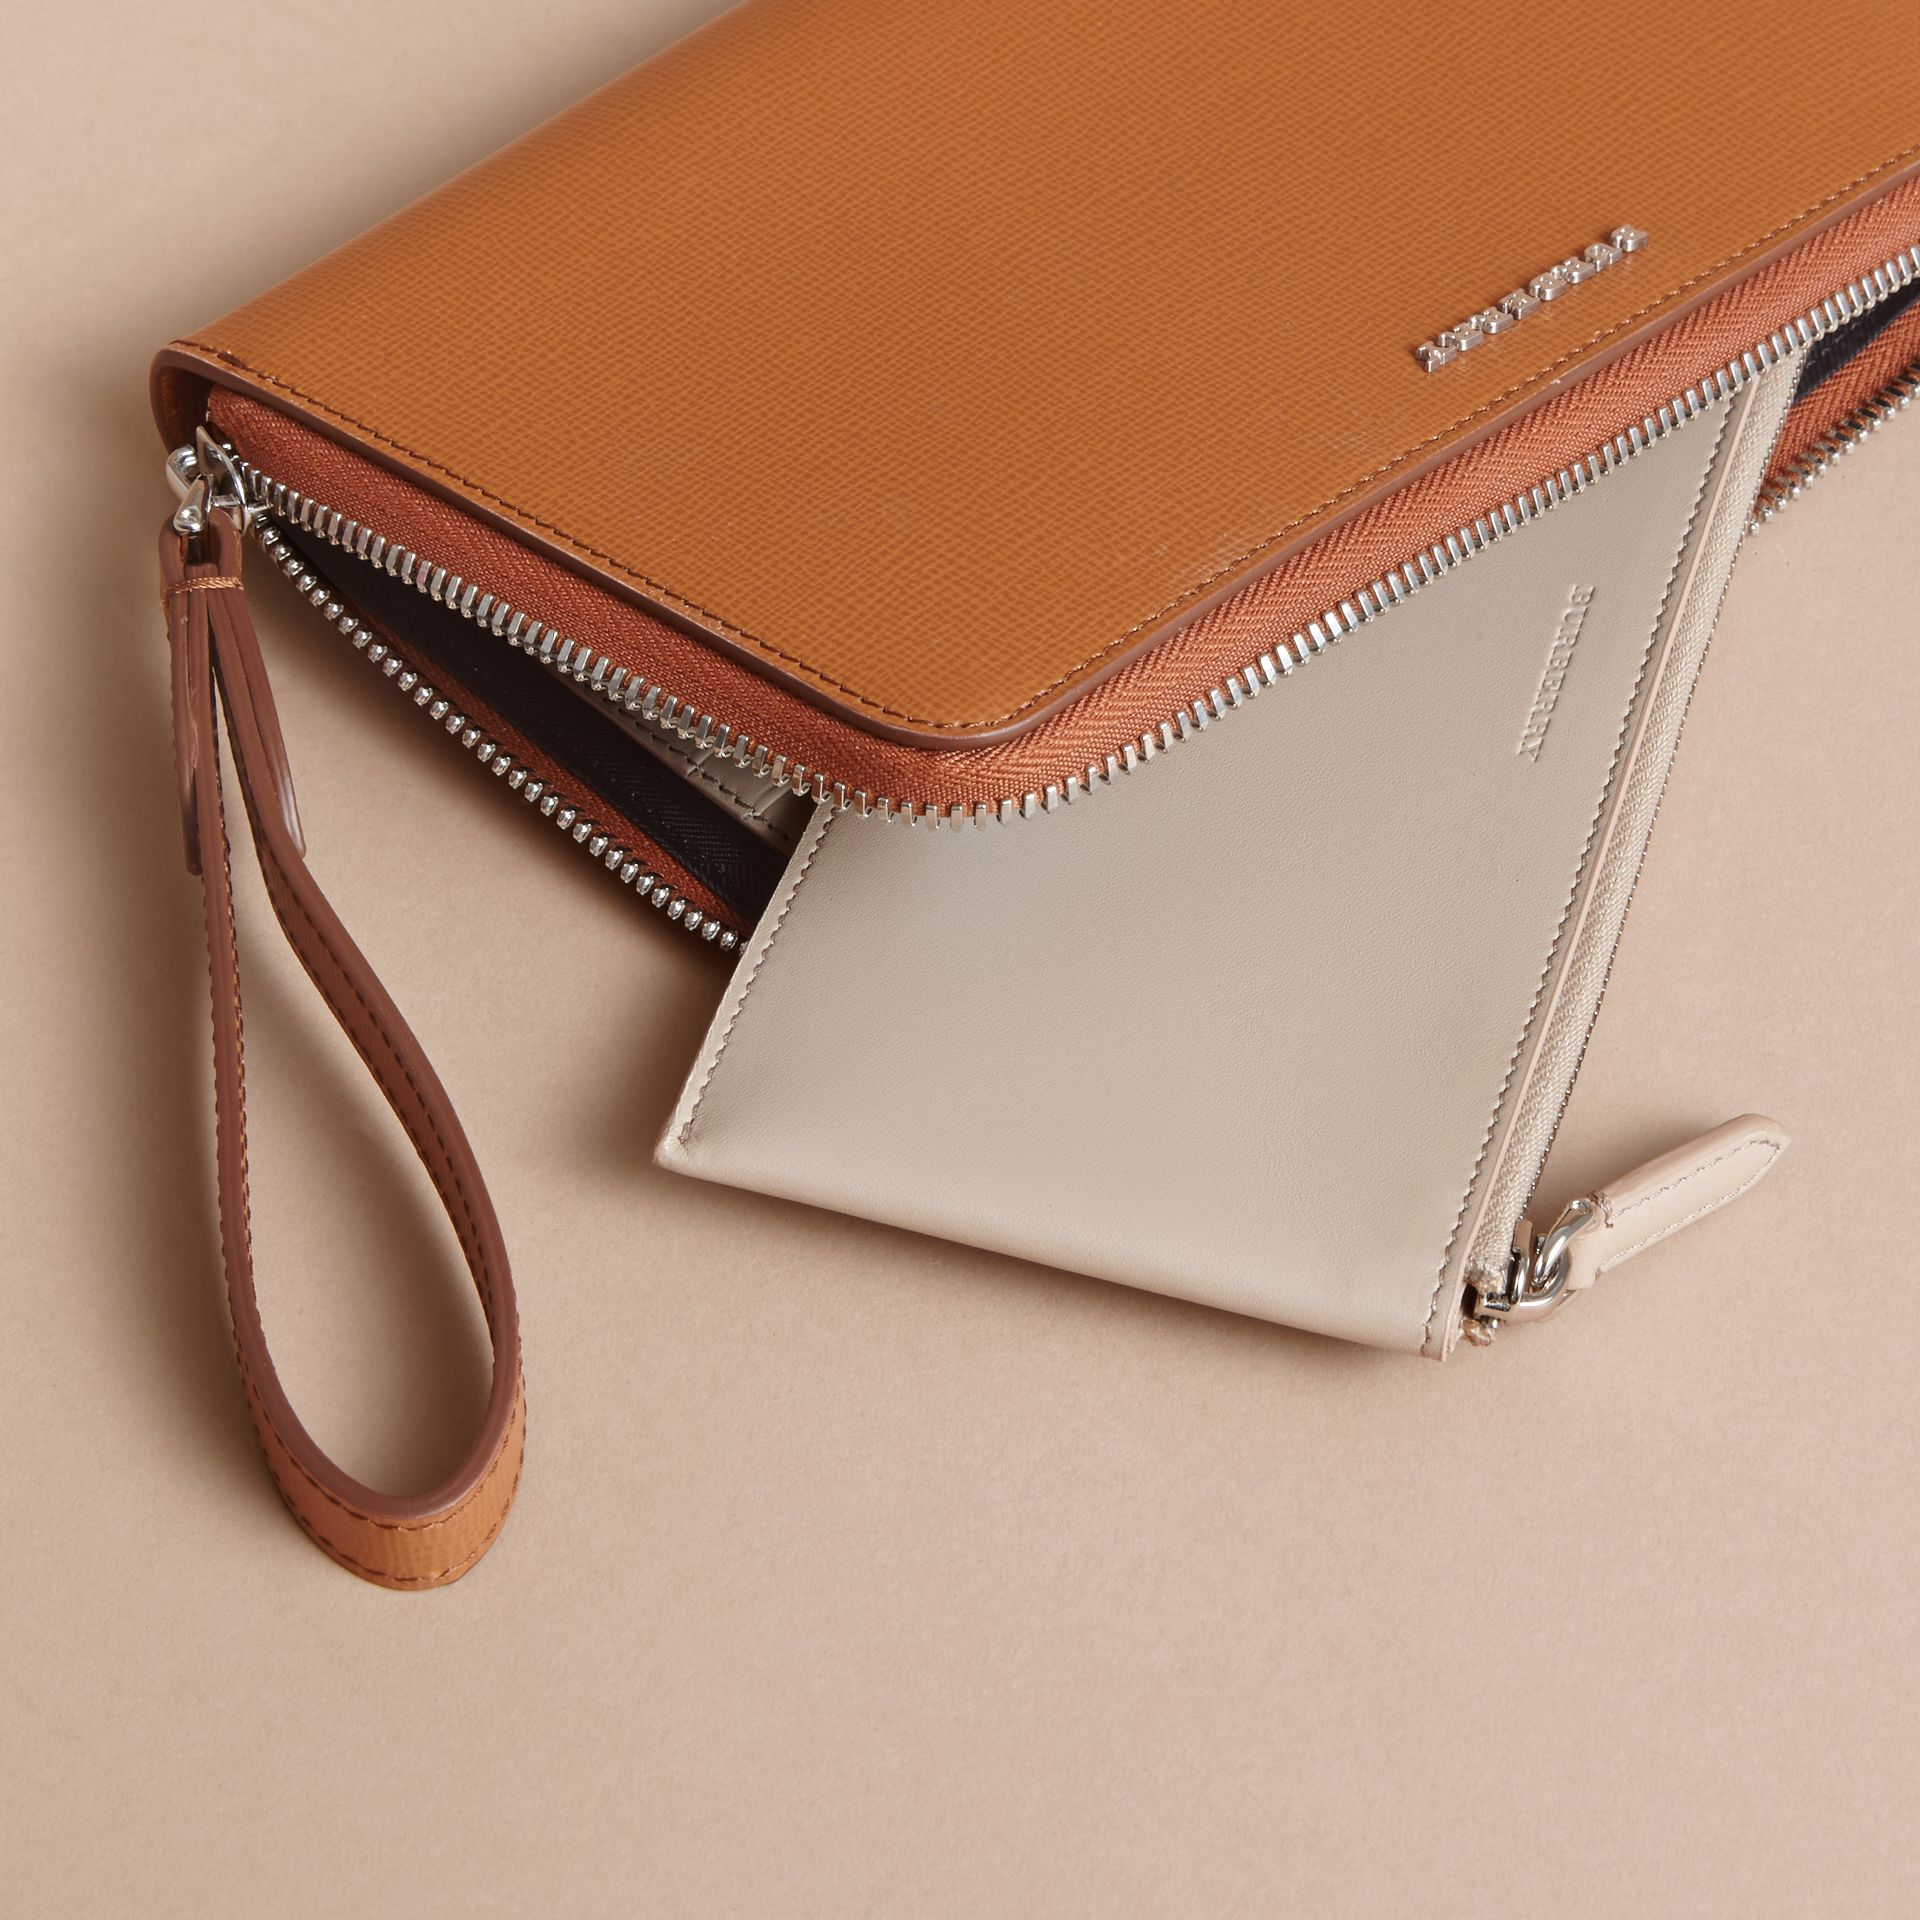 London Leather Travel Wallet in Tan | Burberry Singapore - gallery image 5